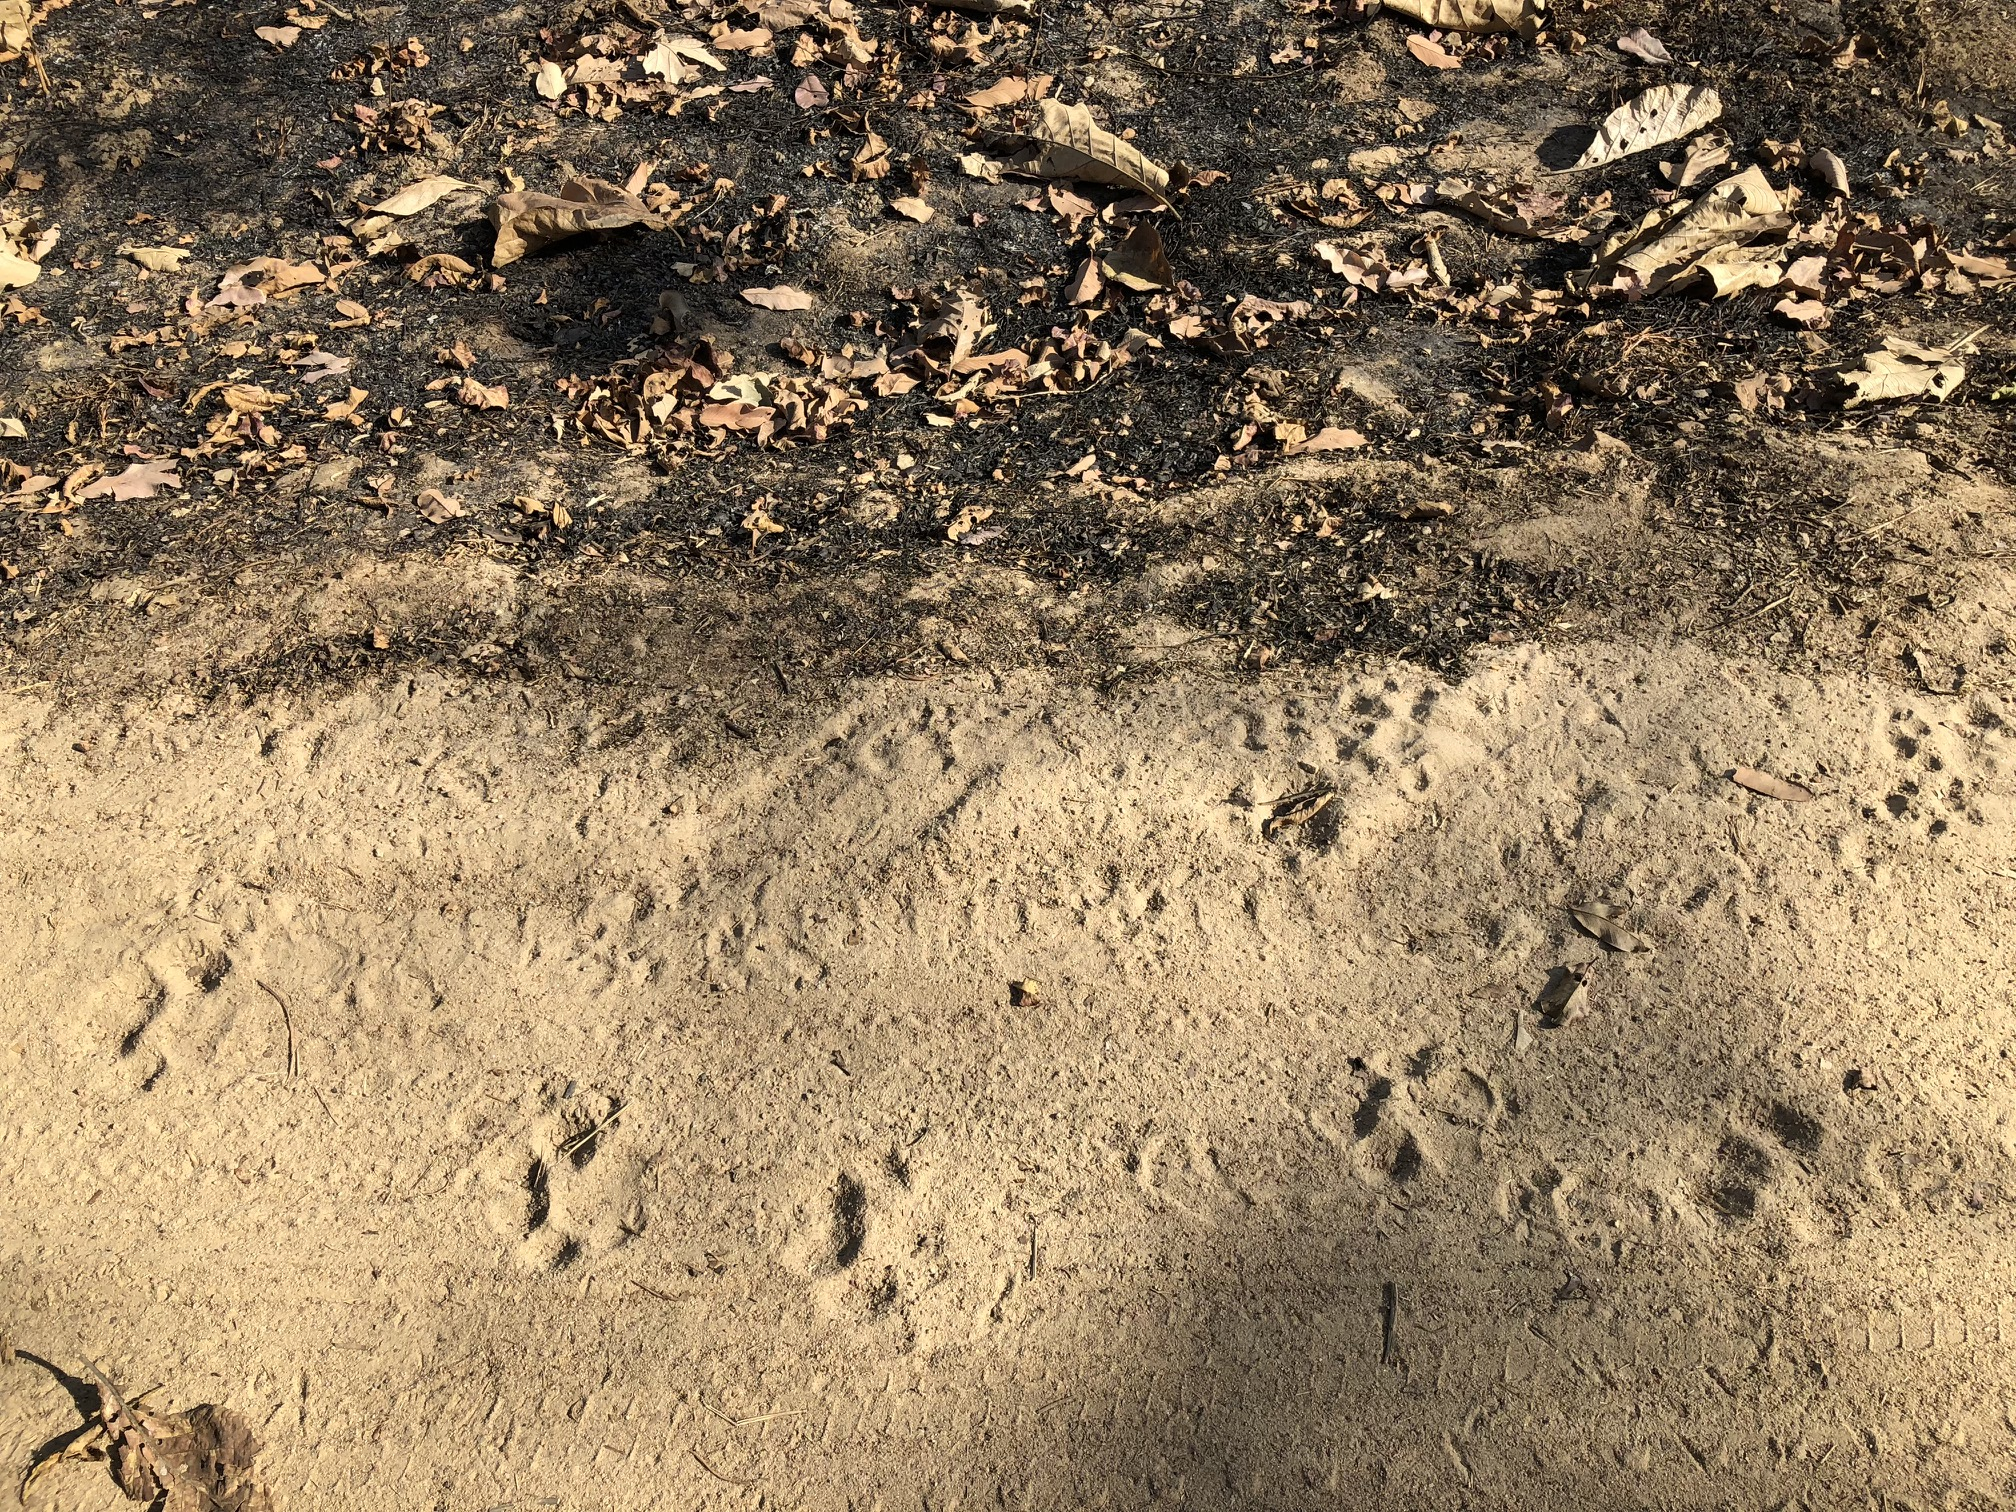 Large paw prints in the dirt of a road indicate a large cat was near recently.